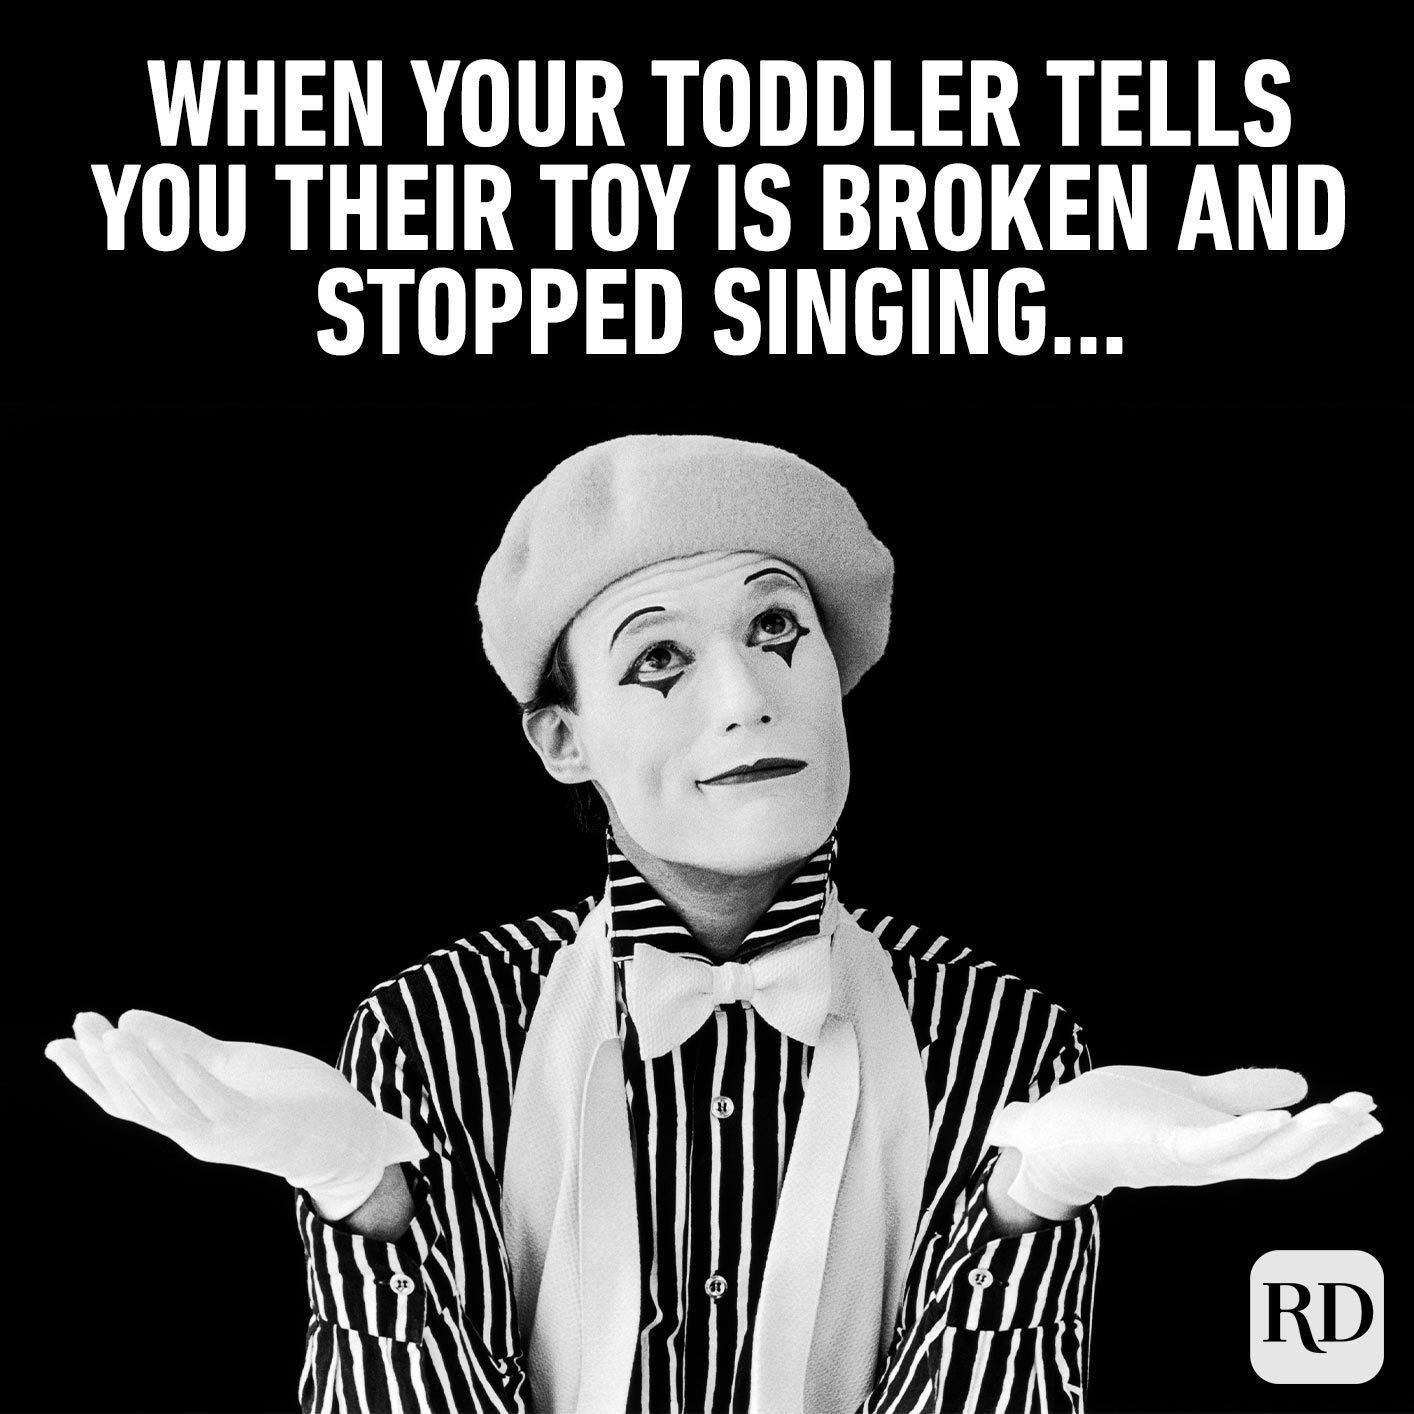 Man painted like a mime, looking guilty. Meme text: When your toddler tells you their toy is broken and stopped singing…